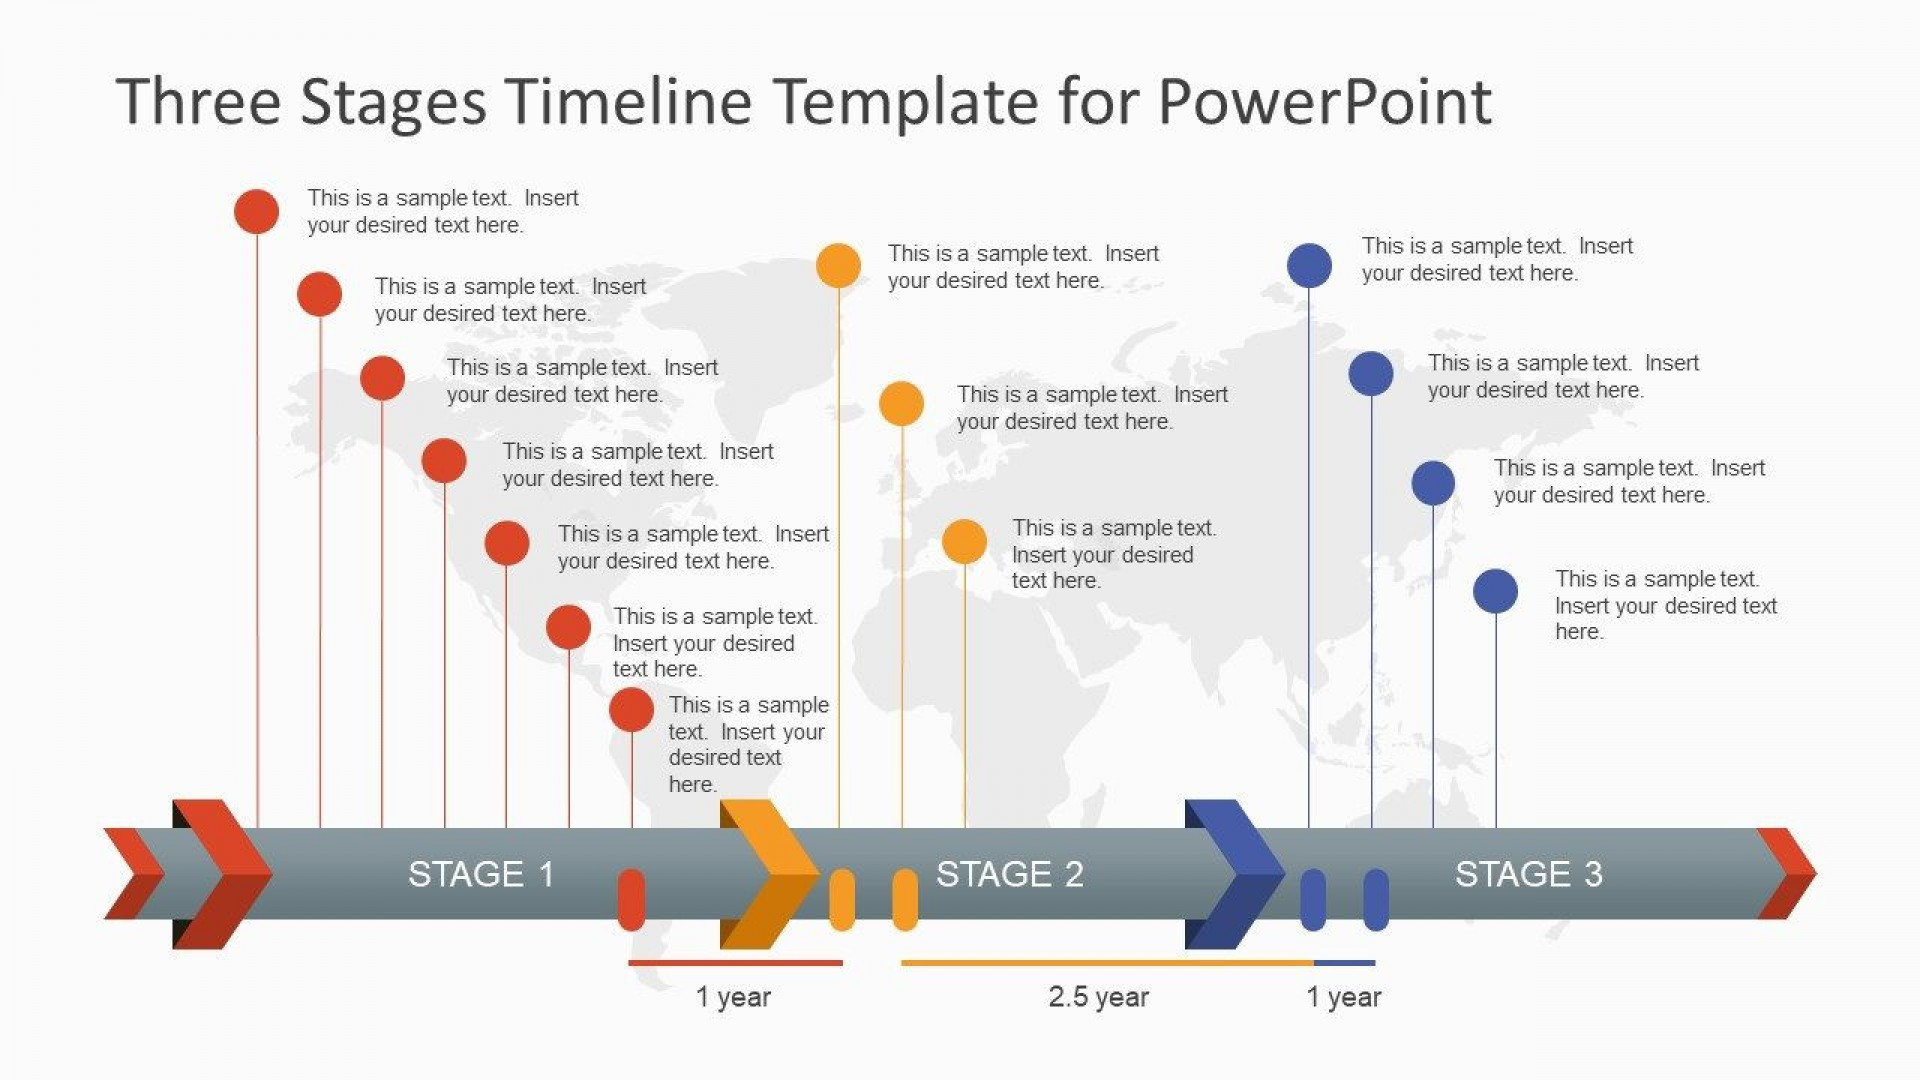 003 Awesome Timeline Format For Ppt High Resolution  Template Pptx Free Sheet1920